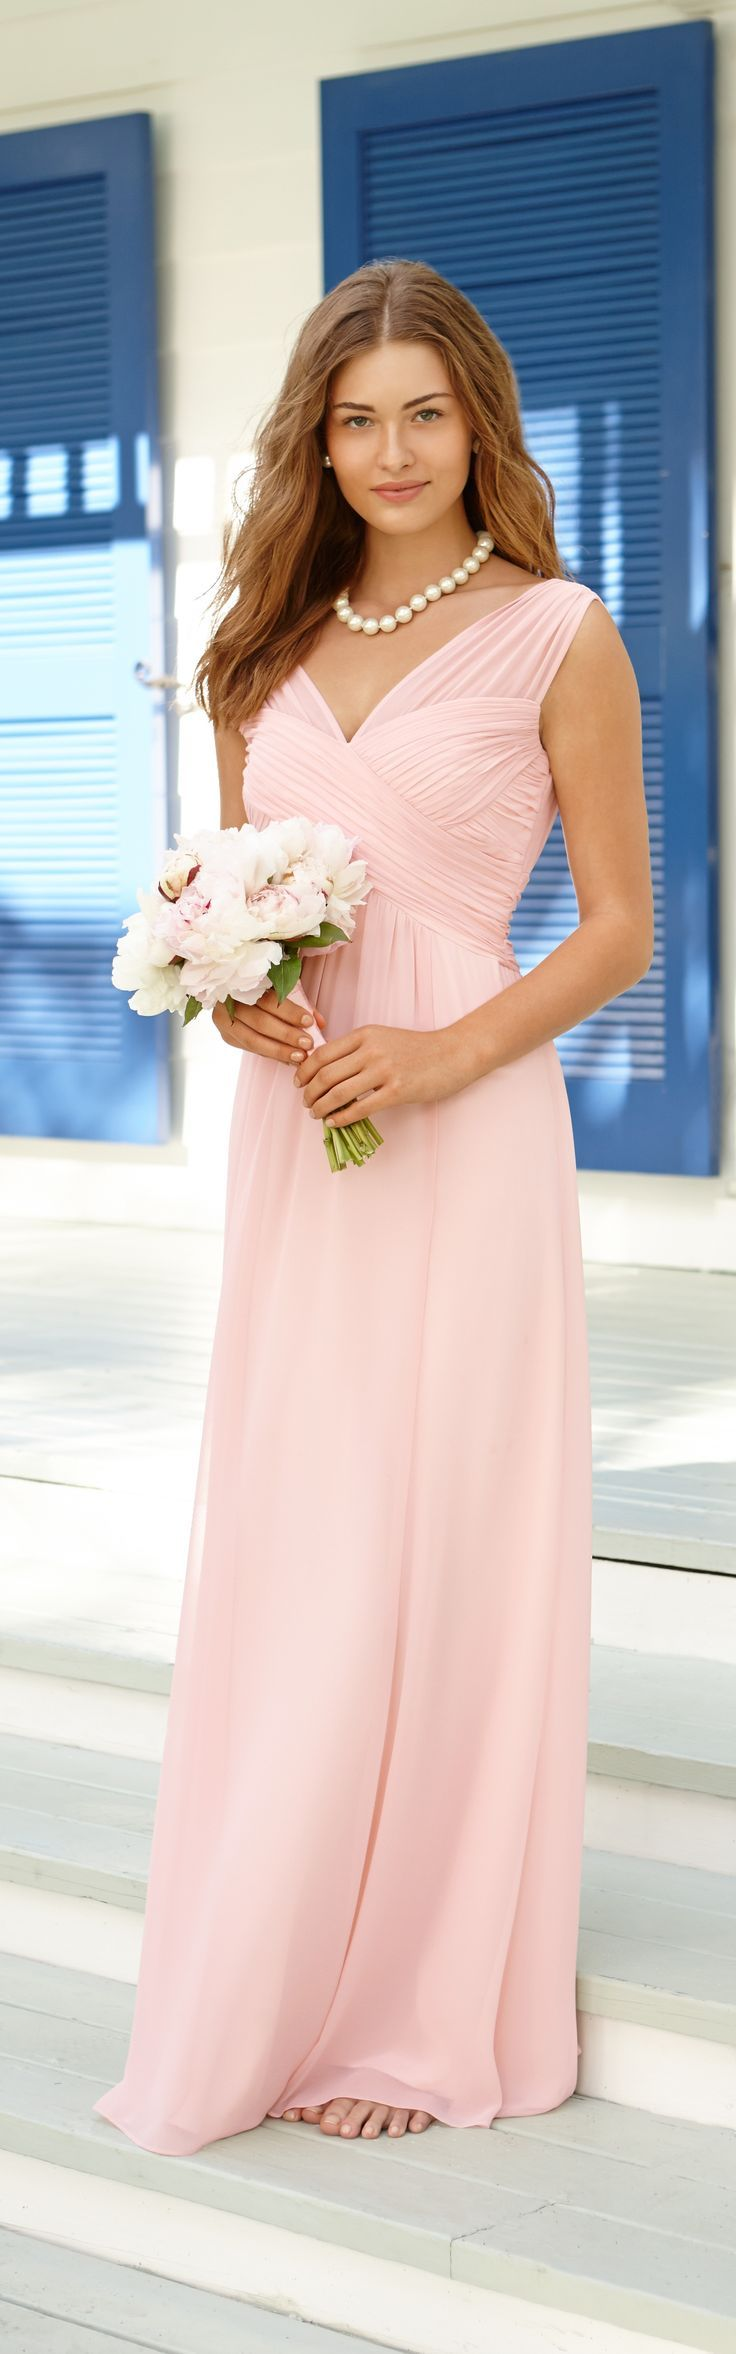 Best 25 light pink bridesmaid dresses ideas only on pinterest now shes your bridesmaid radiant in blush pink bridesmaid dressesblush ombrellifo Choice Image